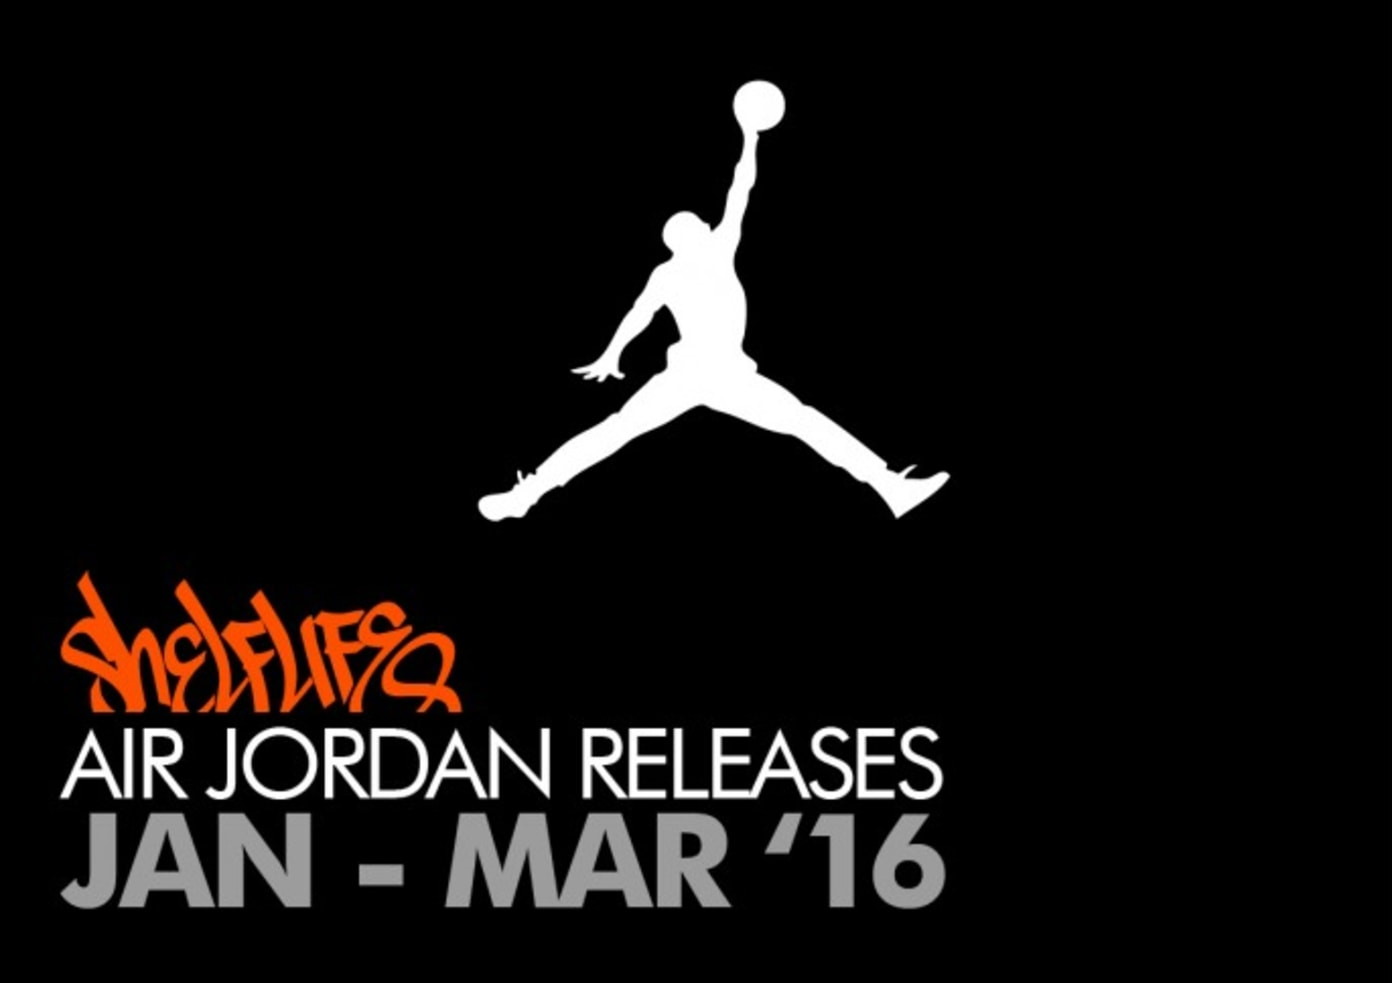 Shelflife Air Jordan Release Dates 2016 January - March